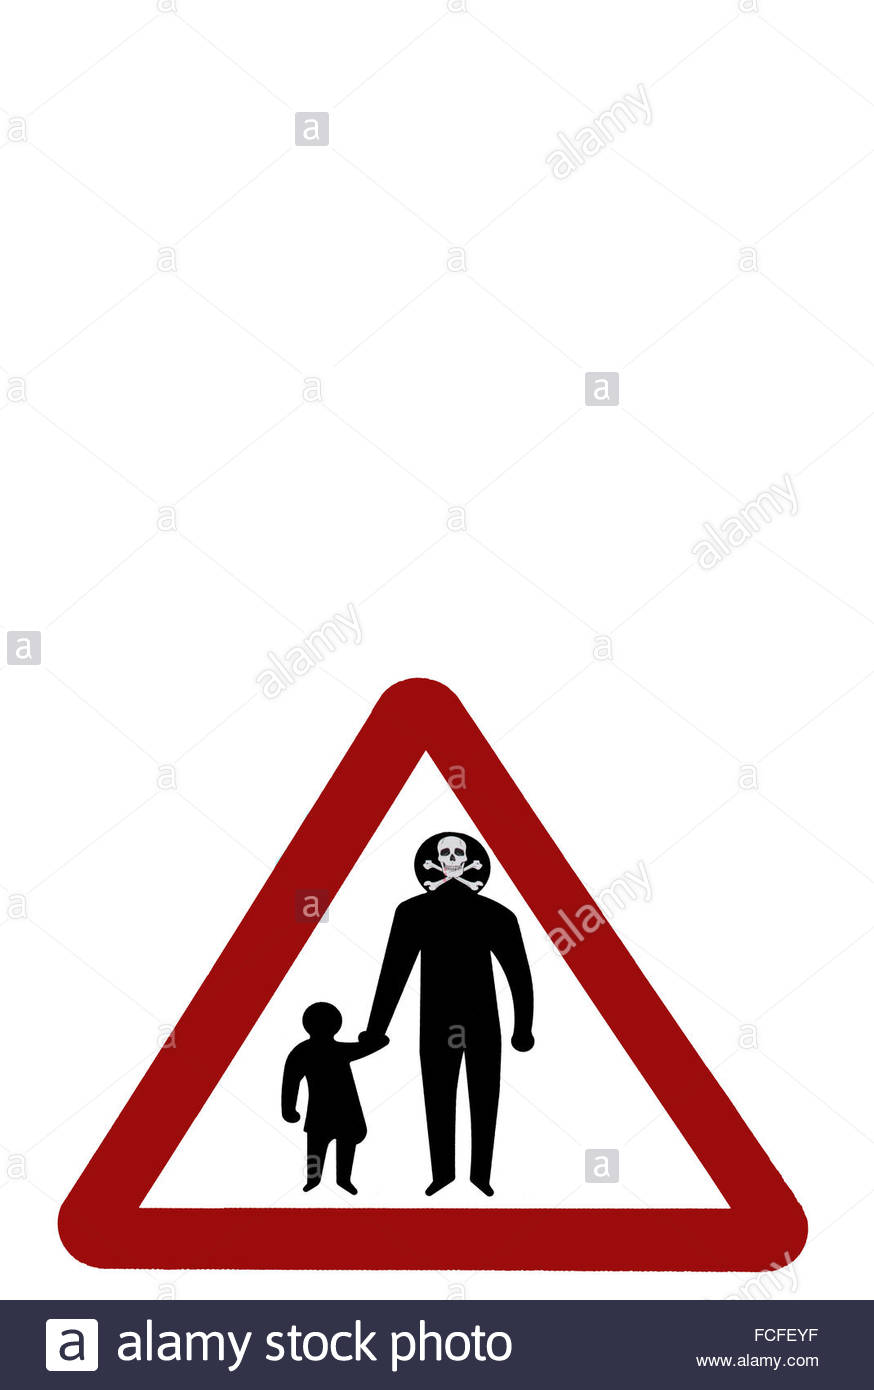 874x1390 Pedestrians Walking Red Triangle Street Sign, With Adult's Head